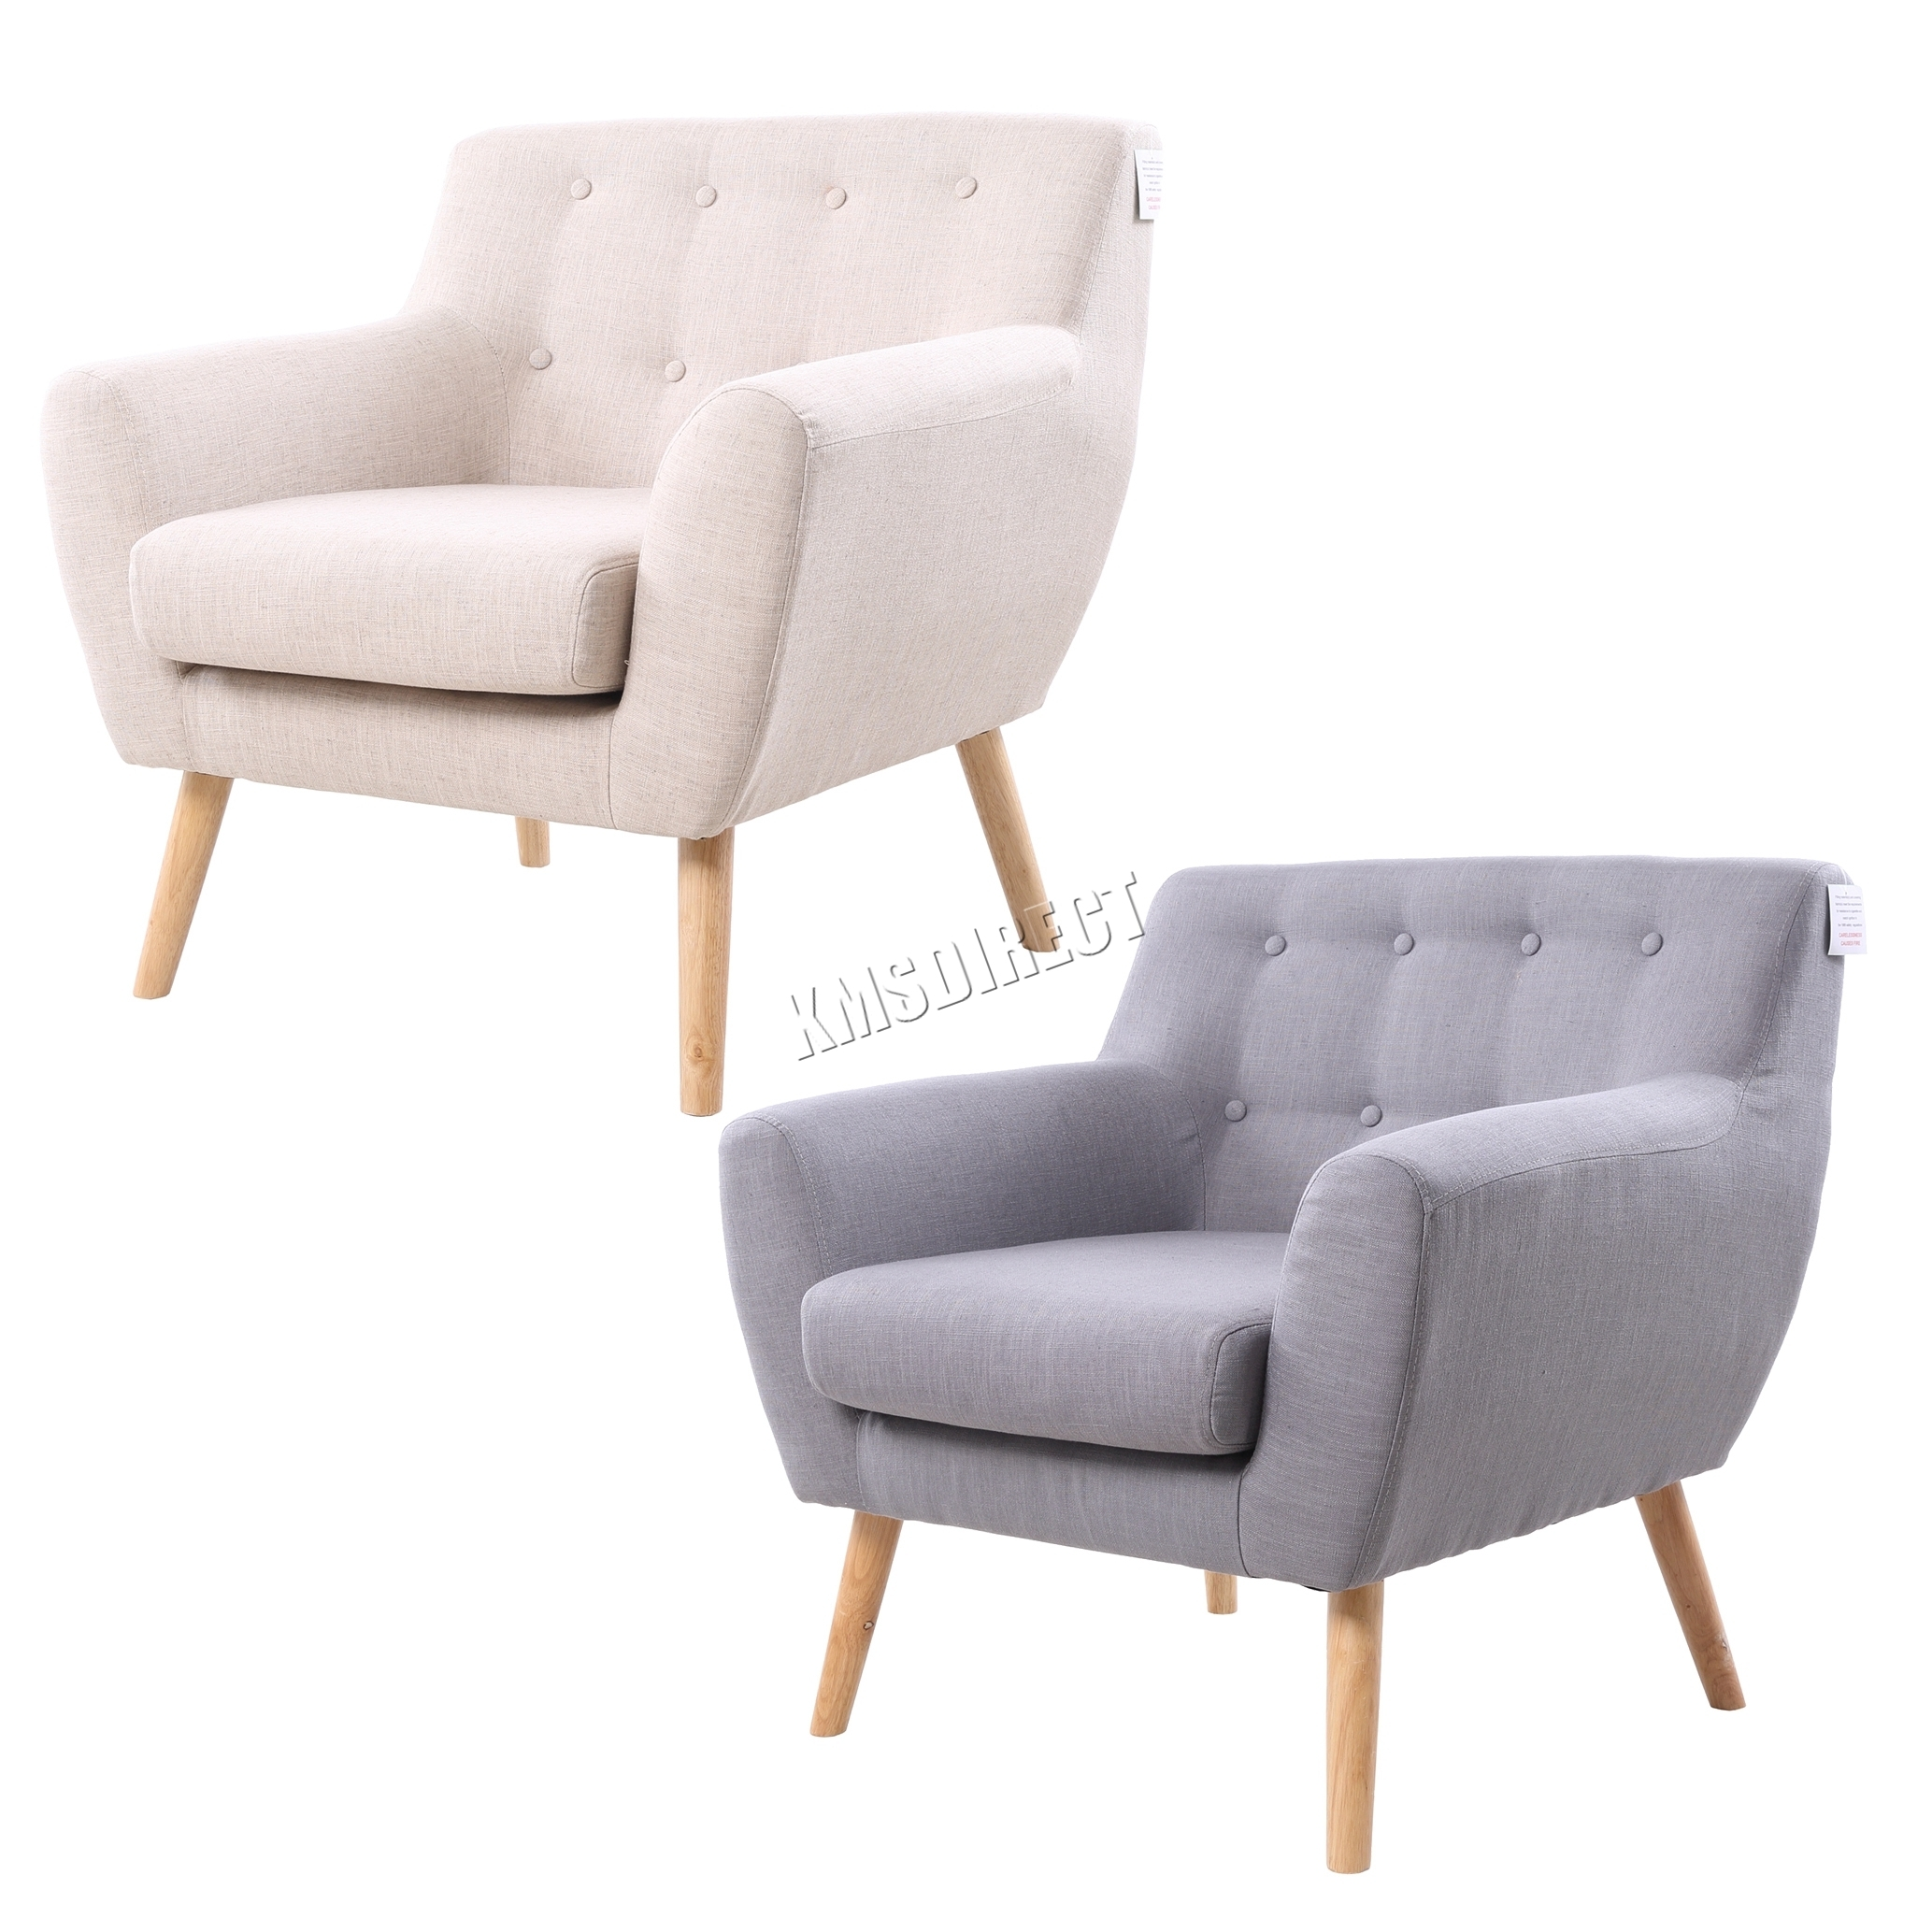 Wonderful Single Seater Sofa With Best Single Seat Sofa 11 About Pertaining To Single Sofas (View 7 of 10)